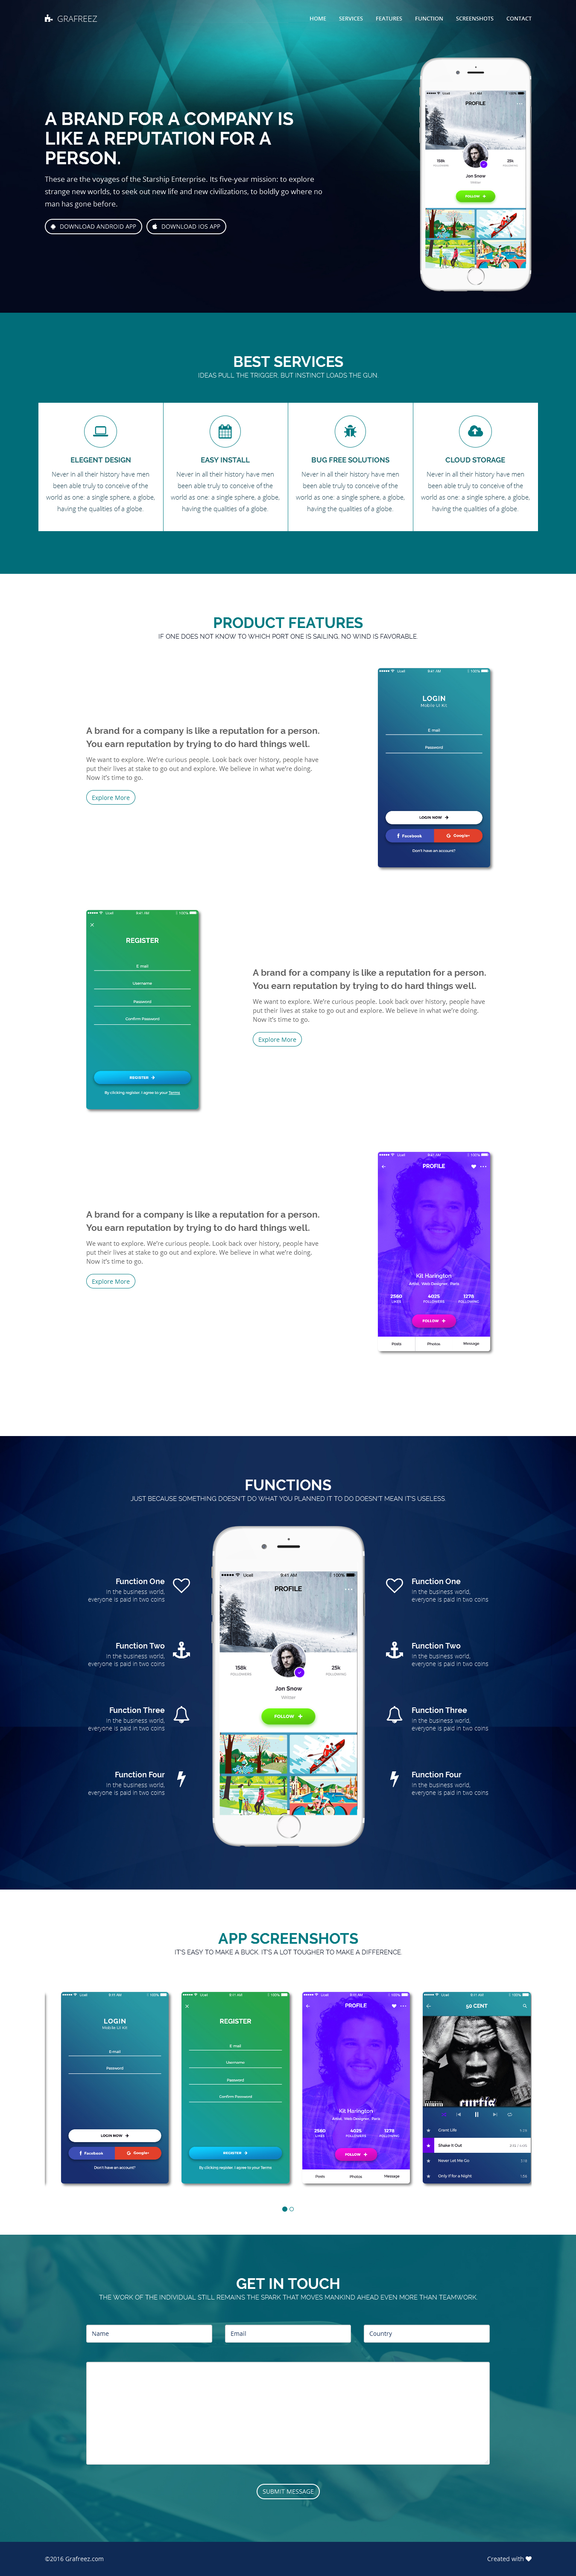 Light Free Mobile App Landing Page Template Html by Grafreez on ...